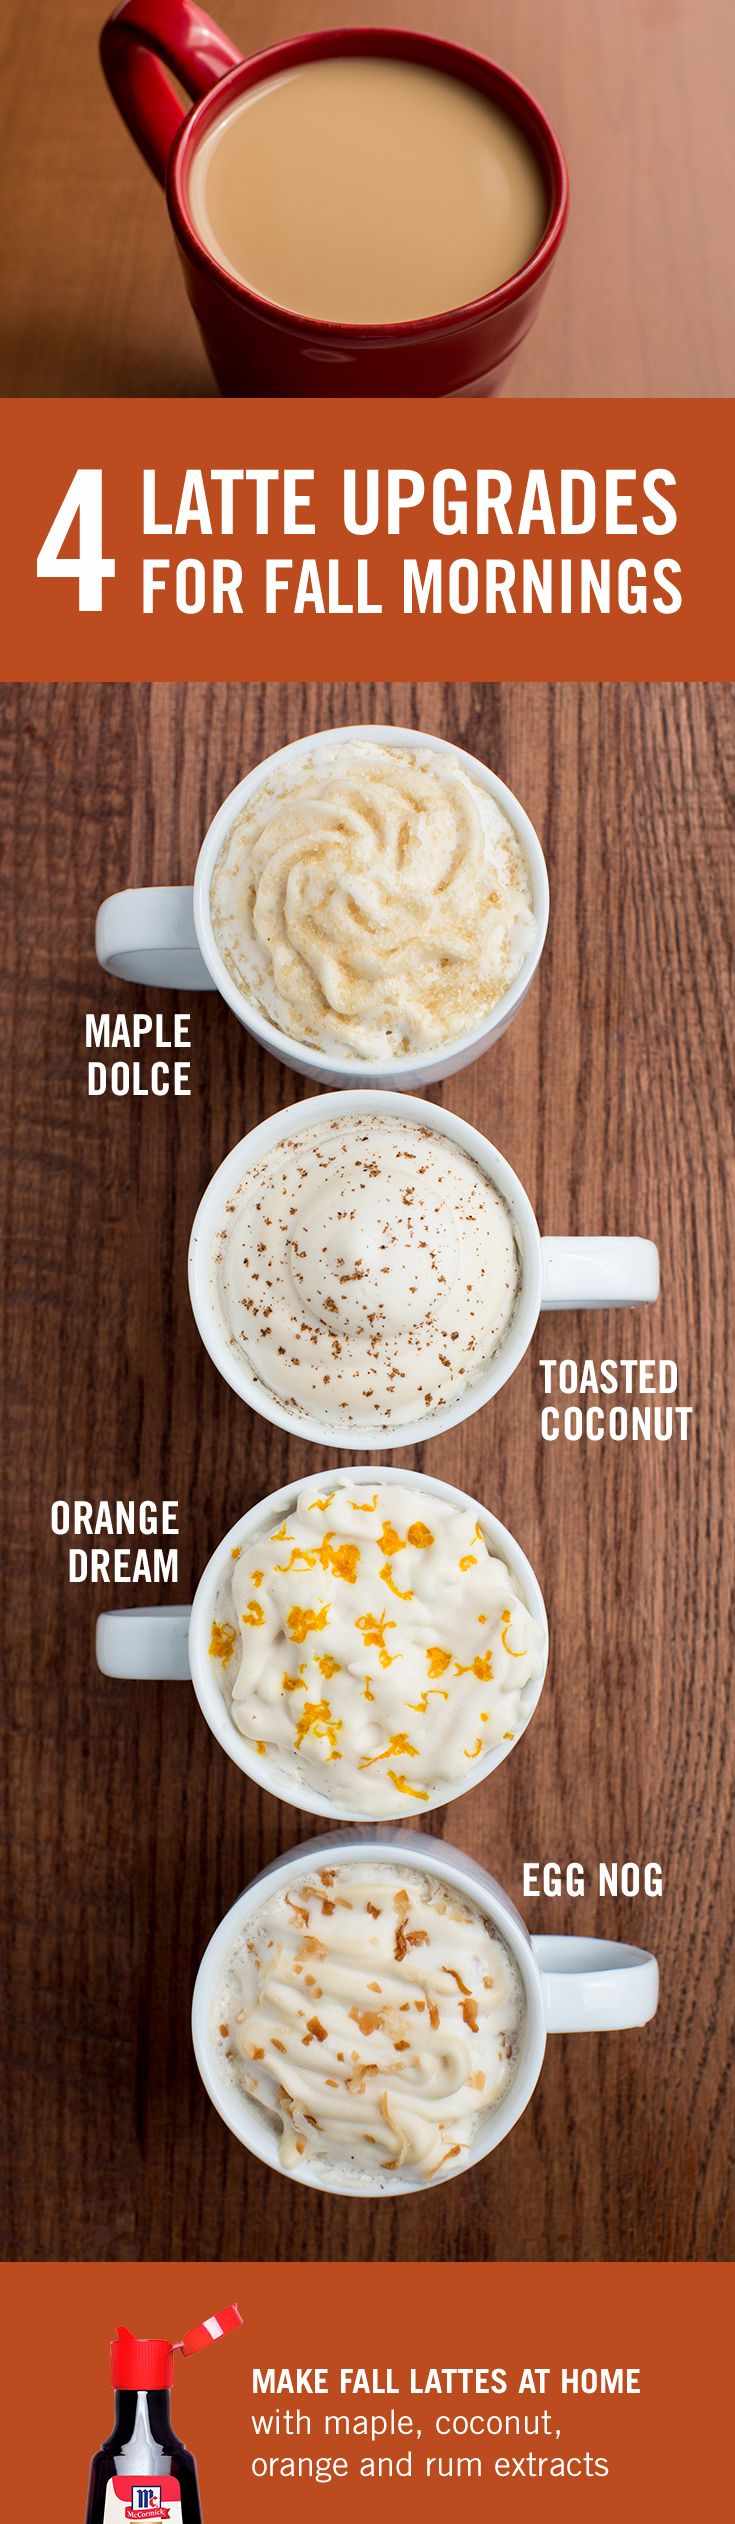 Cozy fall mornings call for a huge, frothy latte (comfy sweater optional). Try these easy fall latte recipes made with McCormick maple, orange, coconut or rum extracts. No corn syrup or GMOs, ever.